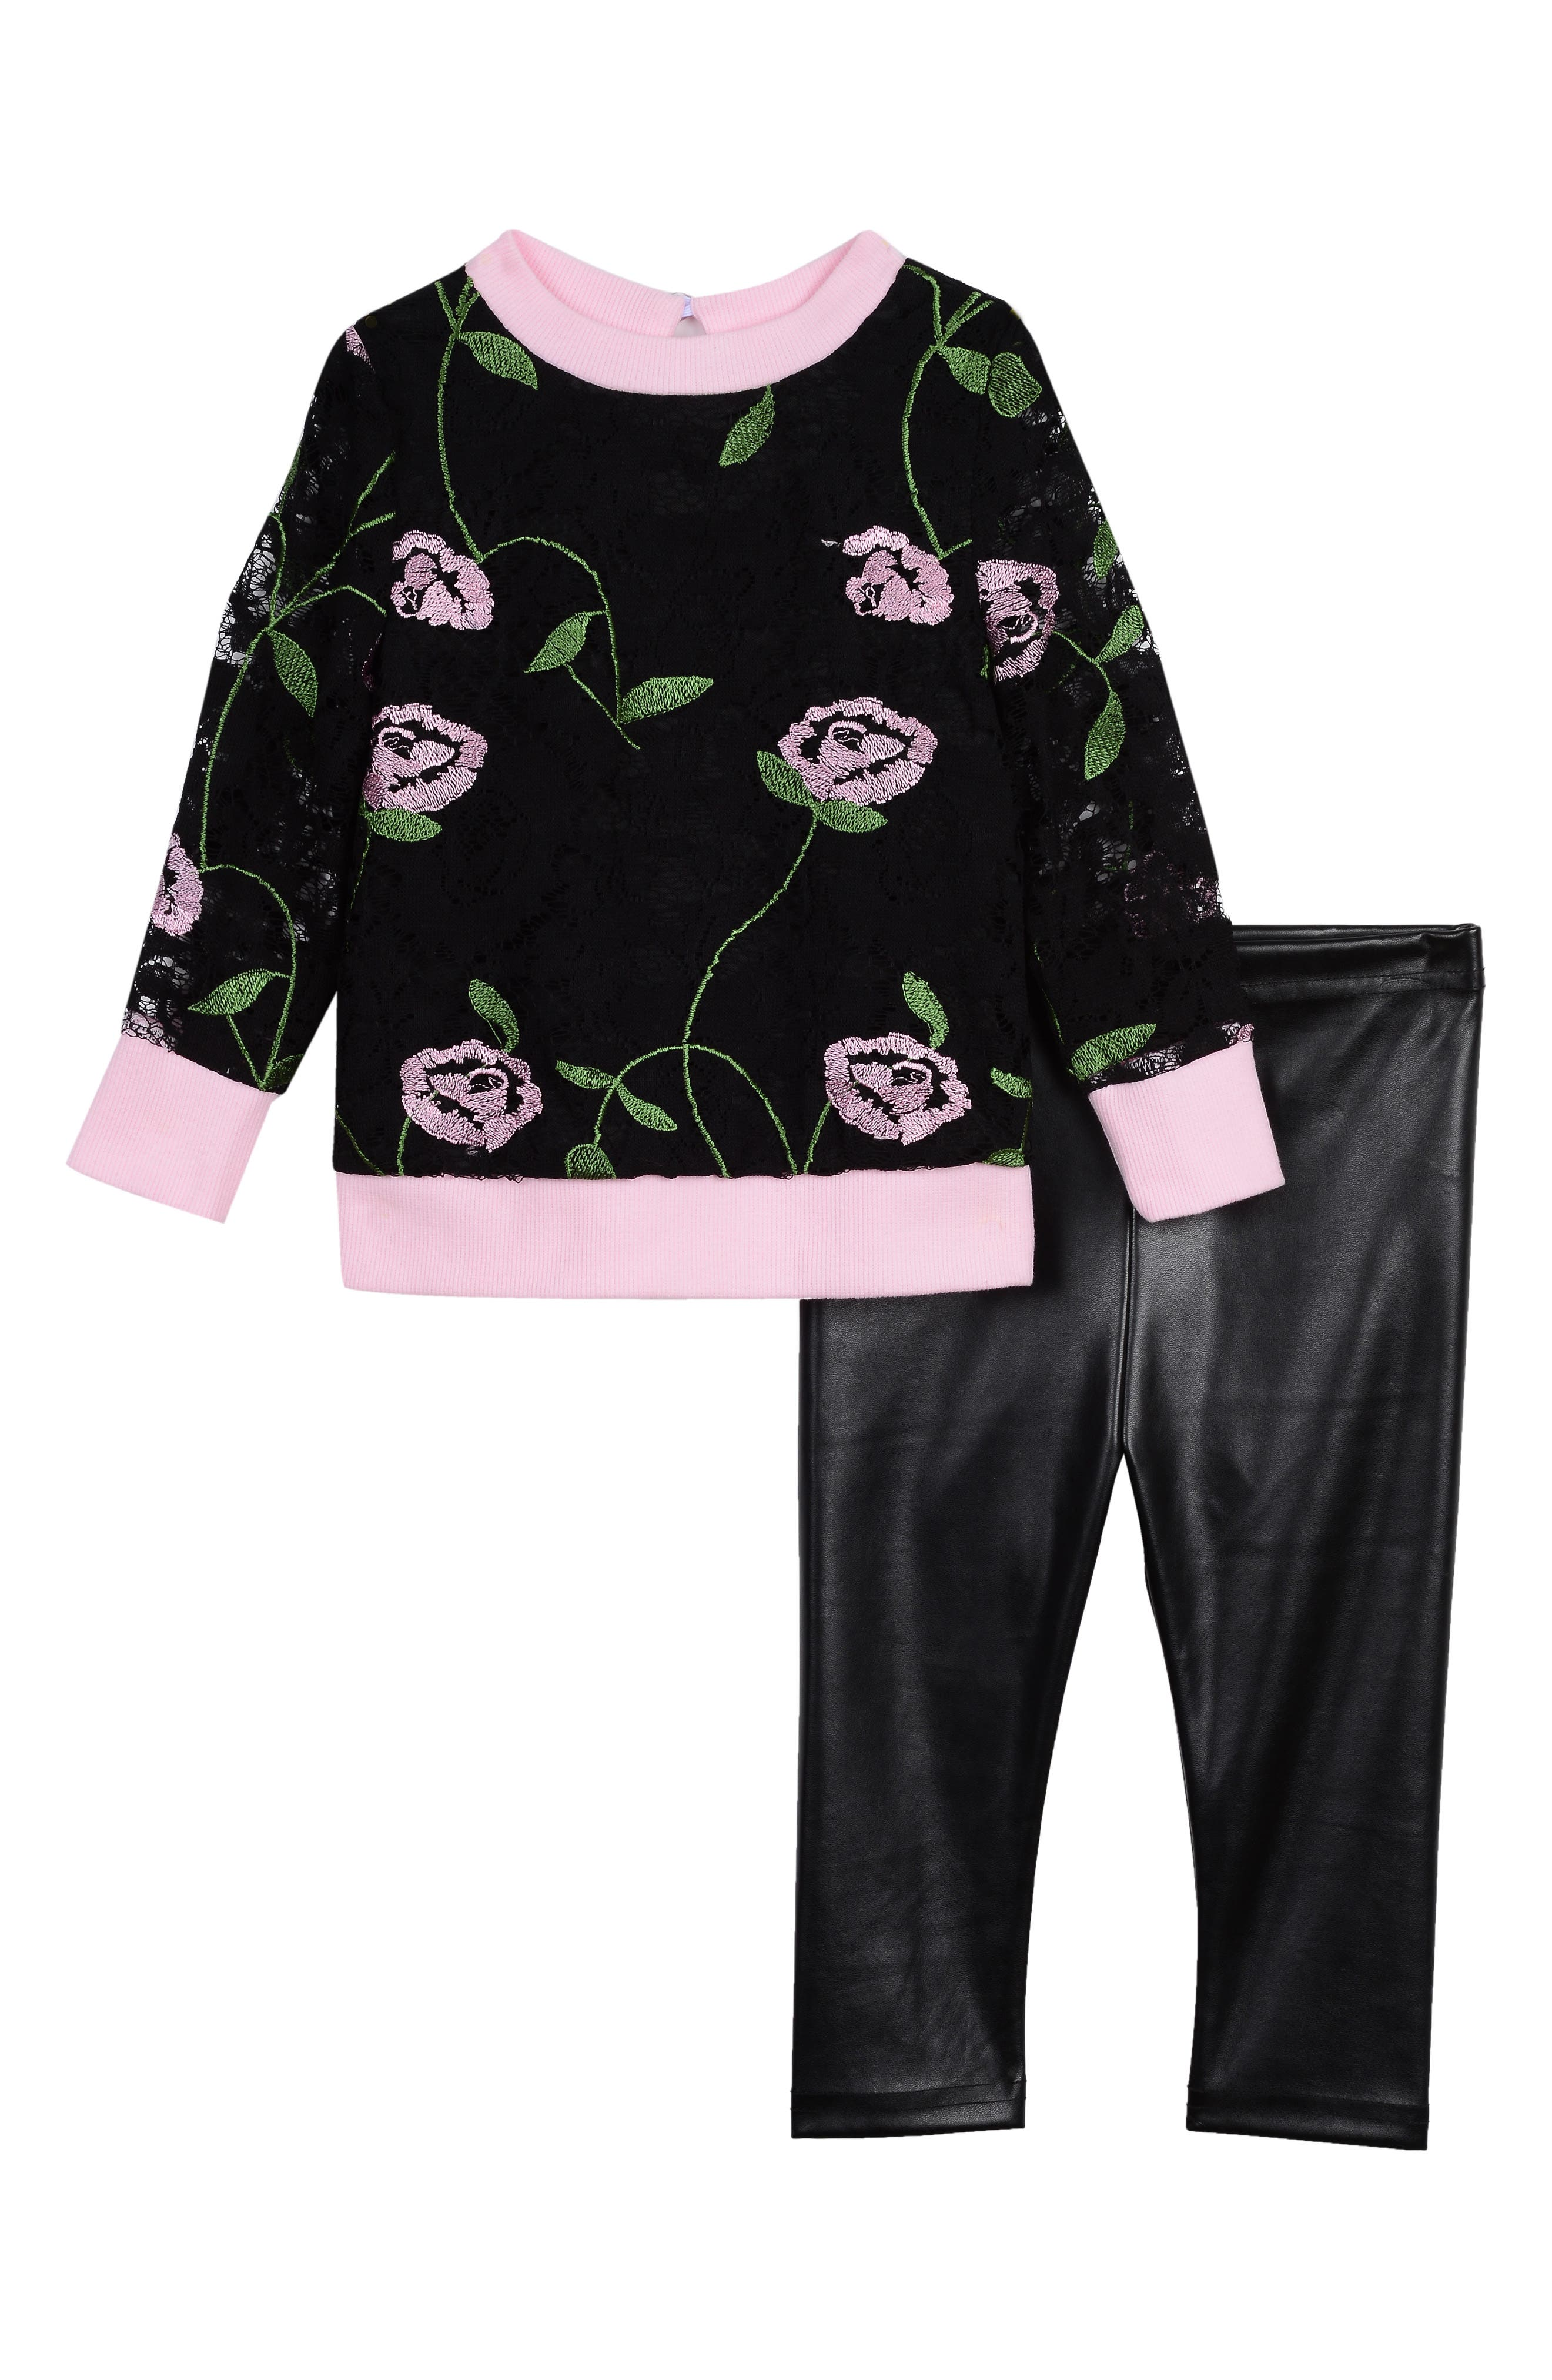 Infant Girls Pippa  Julie Embroidered Lace Top  Faux Leather Leggings Set